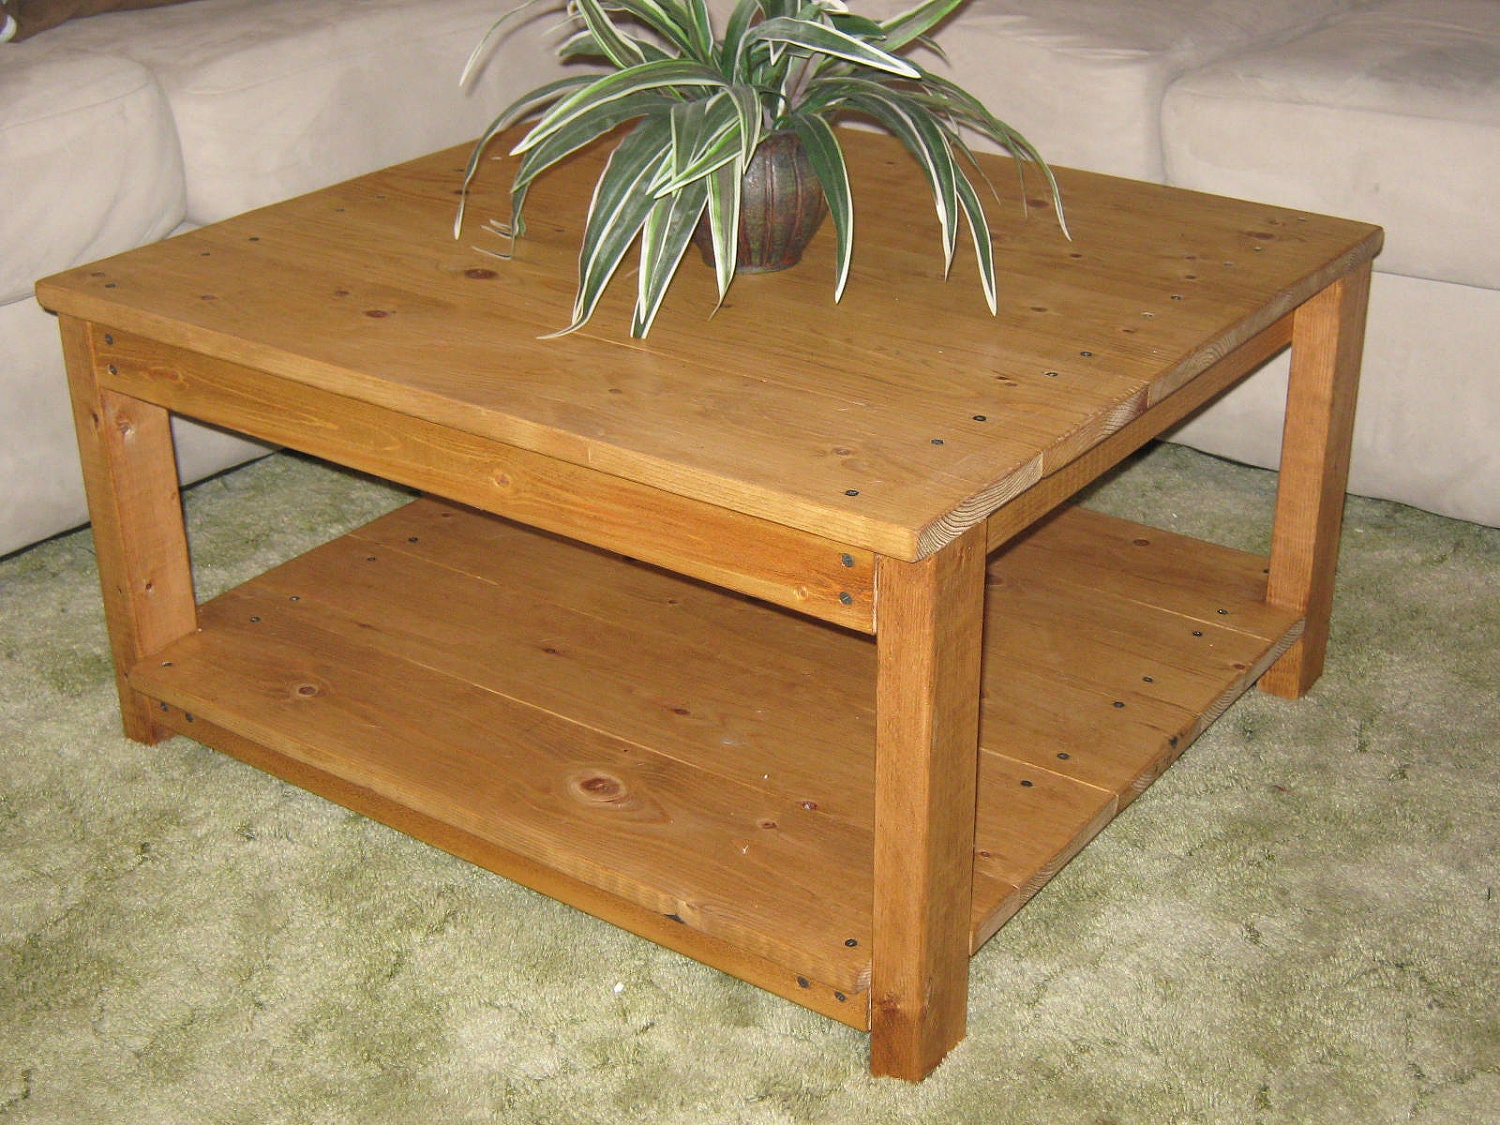 Build Your Own Coffee Table Plans - PDF Plans ...